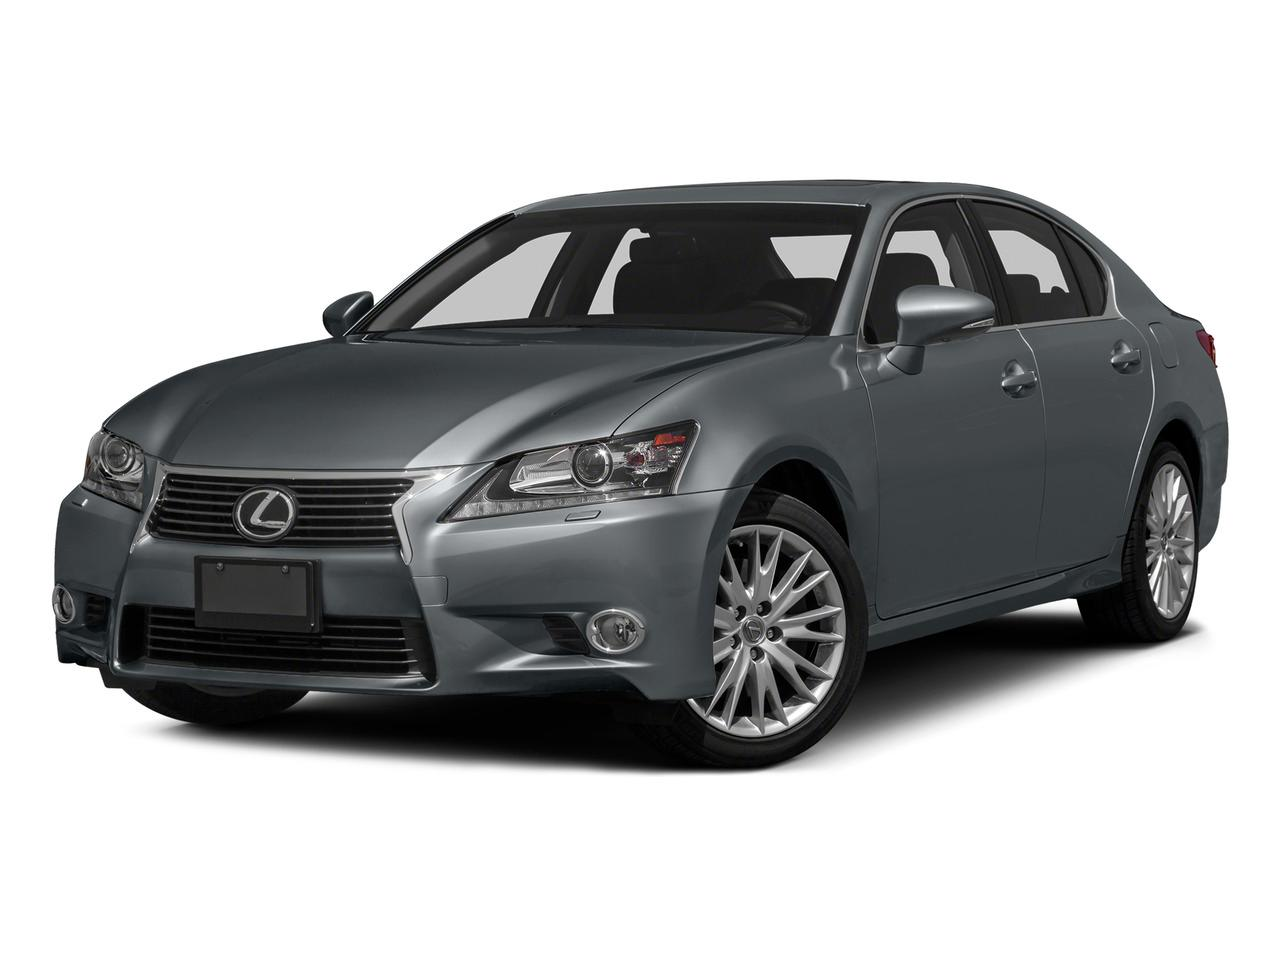 2015 Lexus GS 350 Vehicle Photo in Bowie, MD 20716